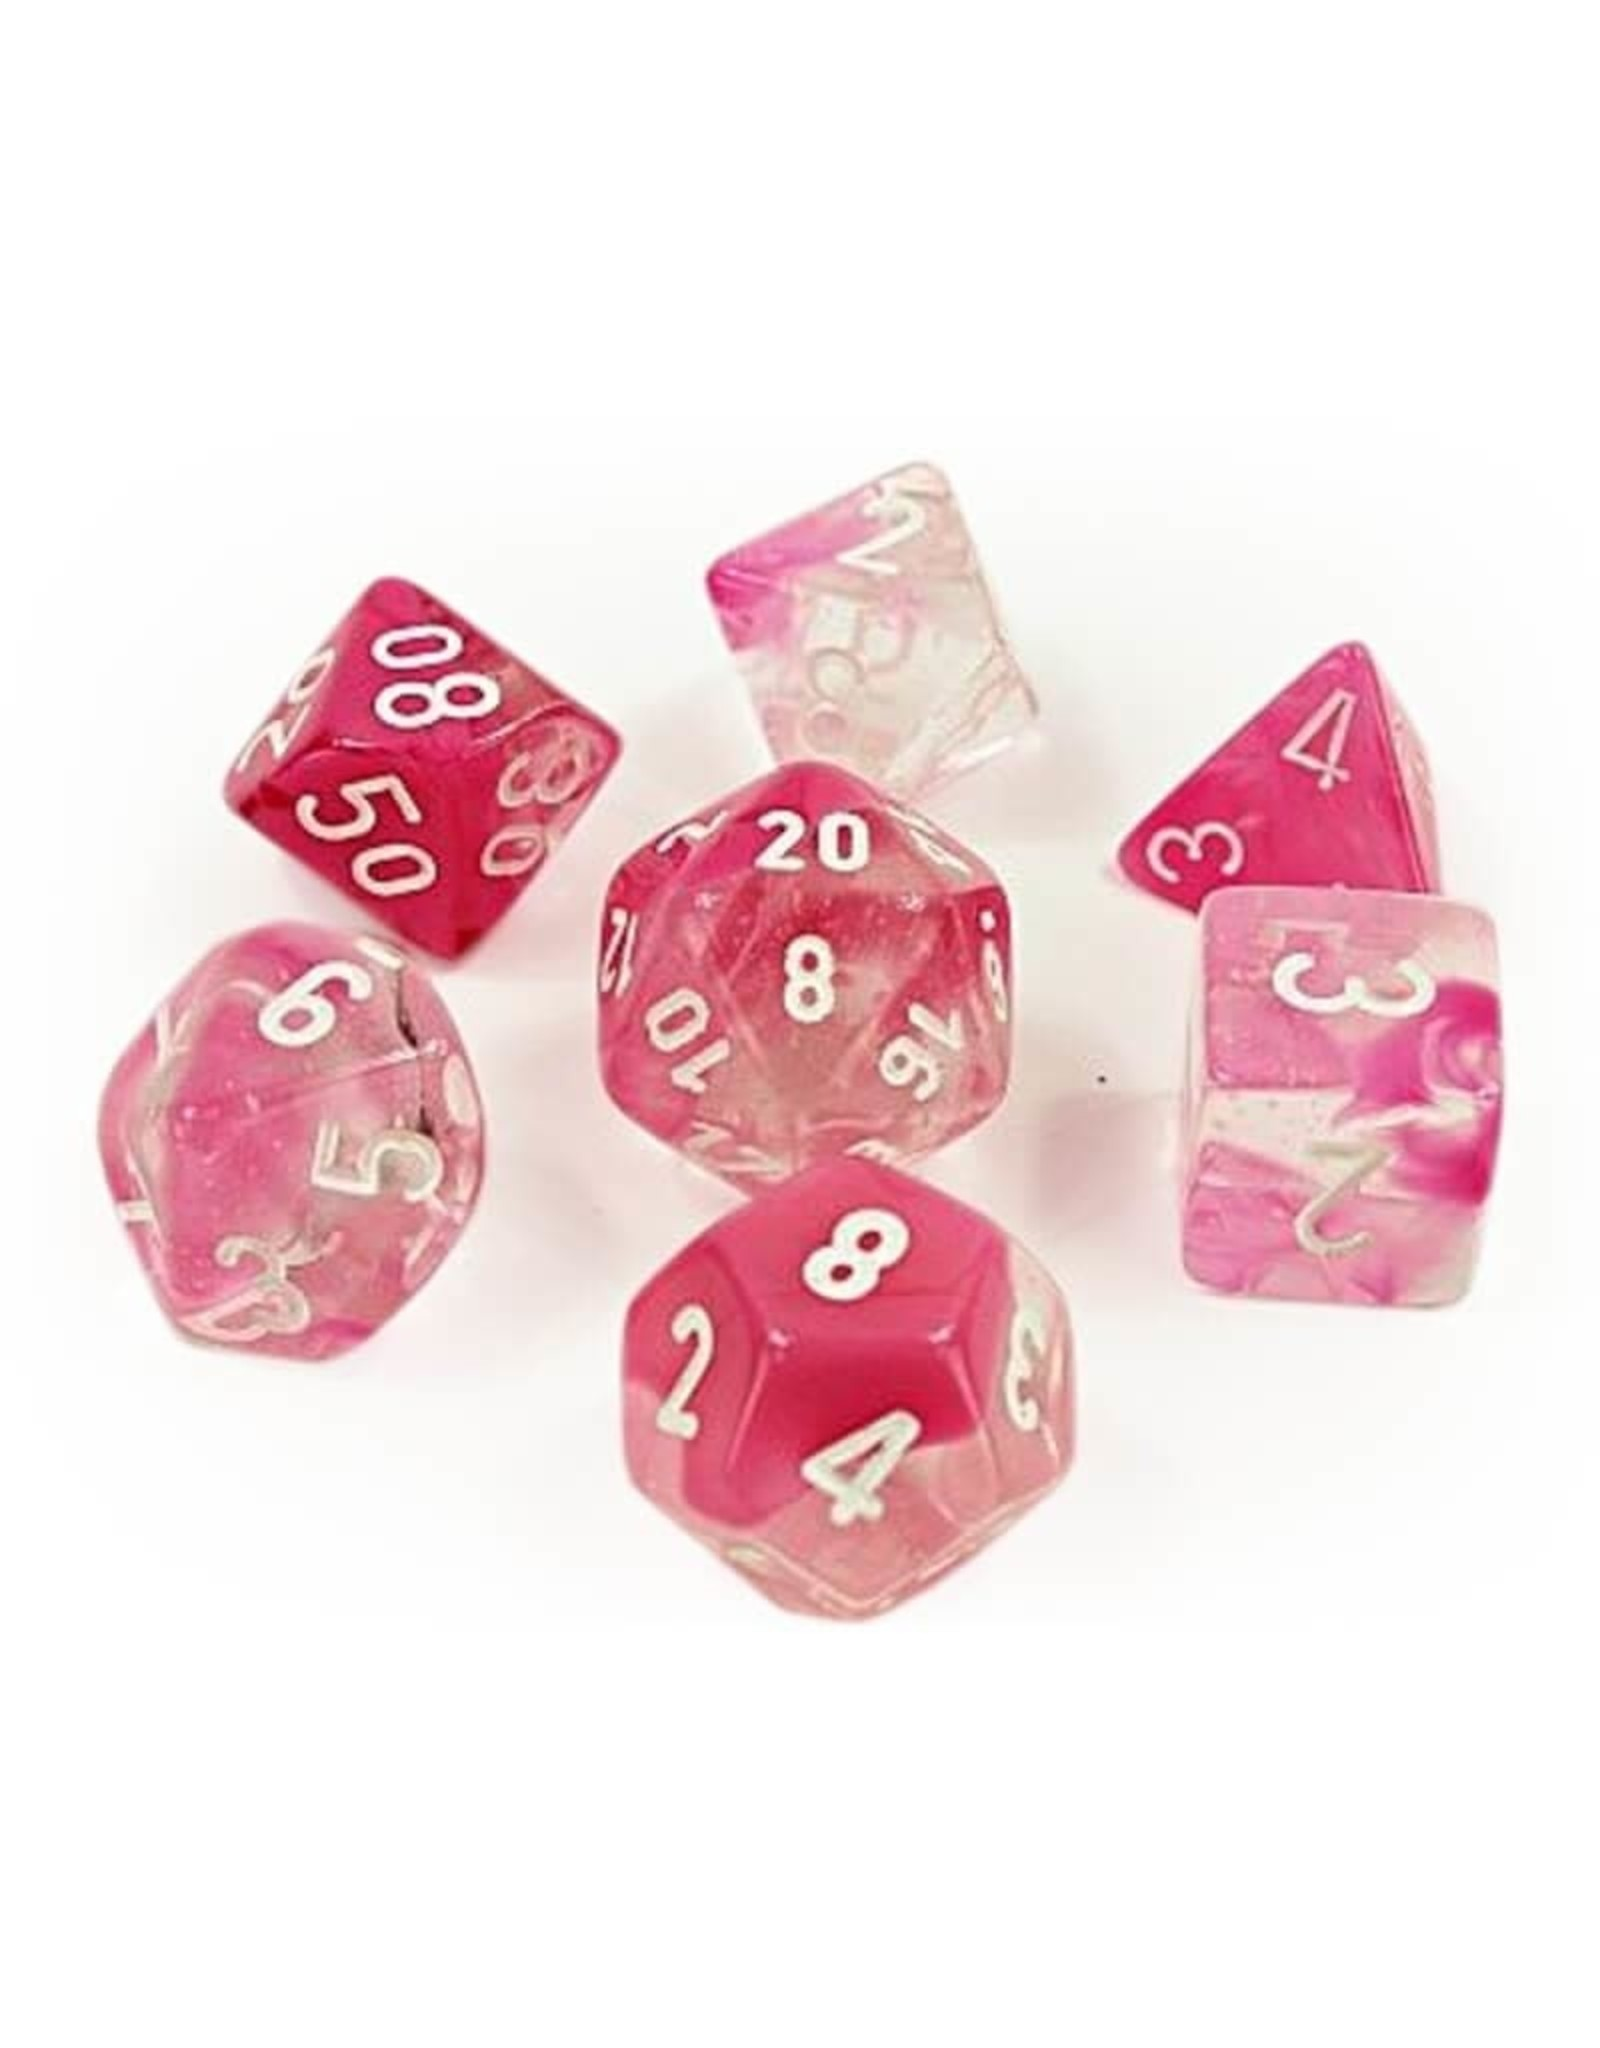 CHESSEX GEMINI 7-DIE SET CLEAR-PINK/WHITE LUMINARY (Lab Dice)